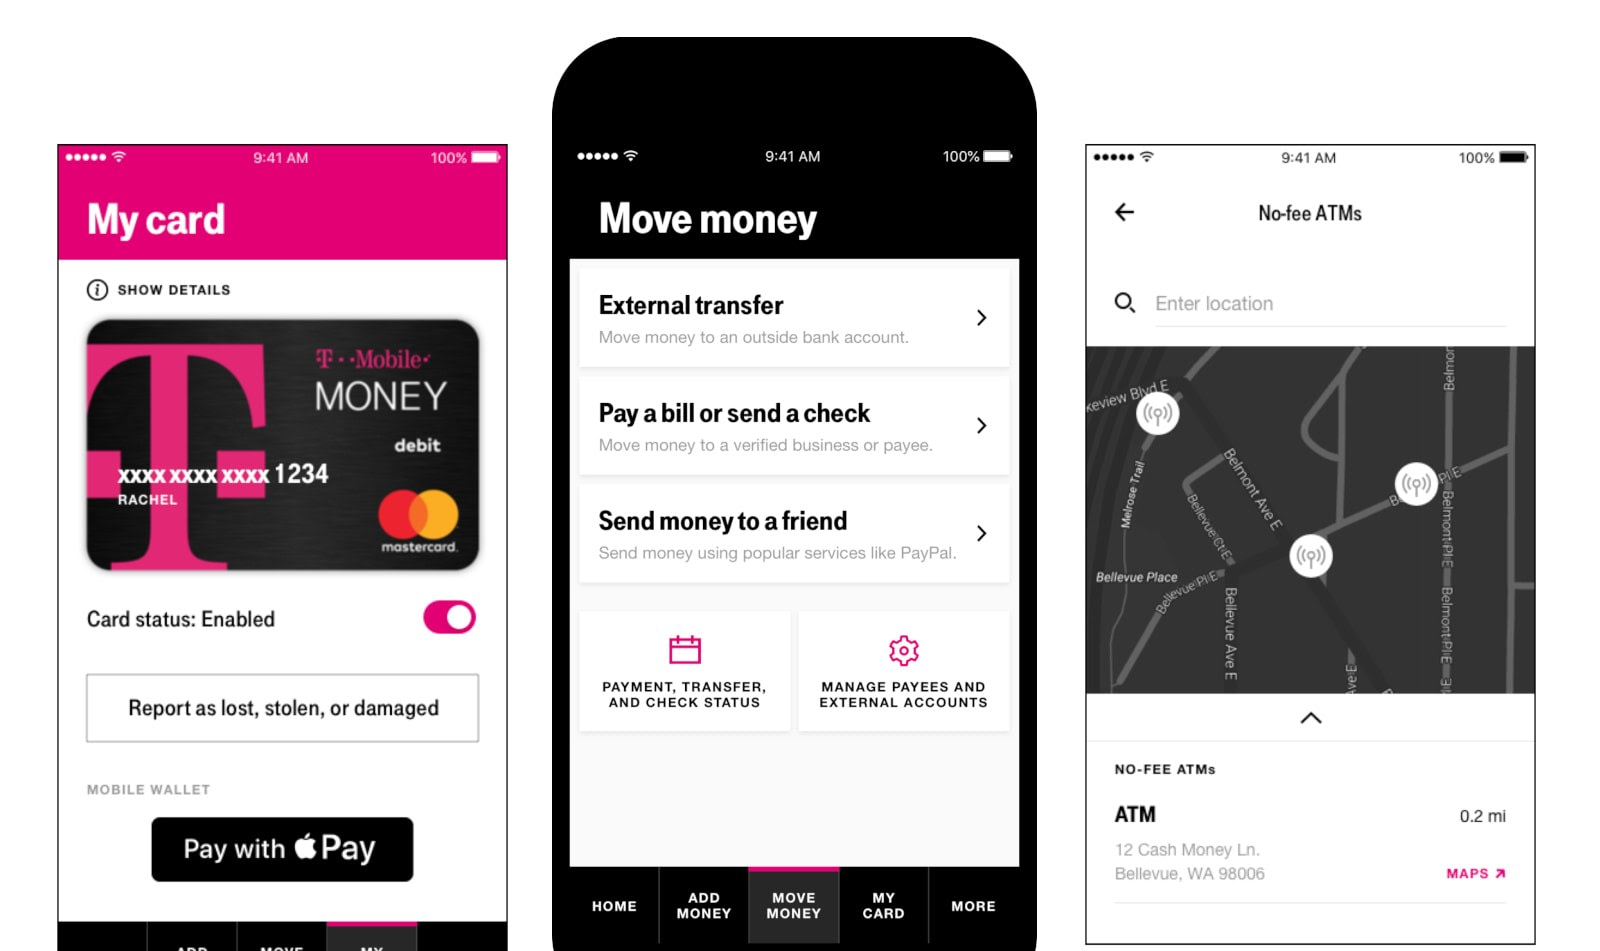 T-Mobile's Money banking app makes its nationwide debut